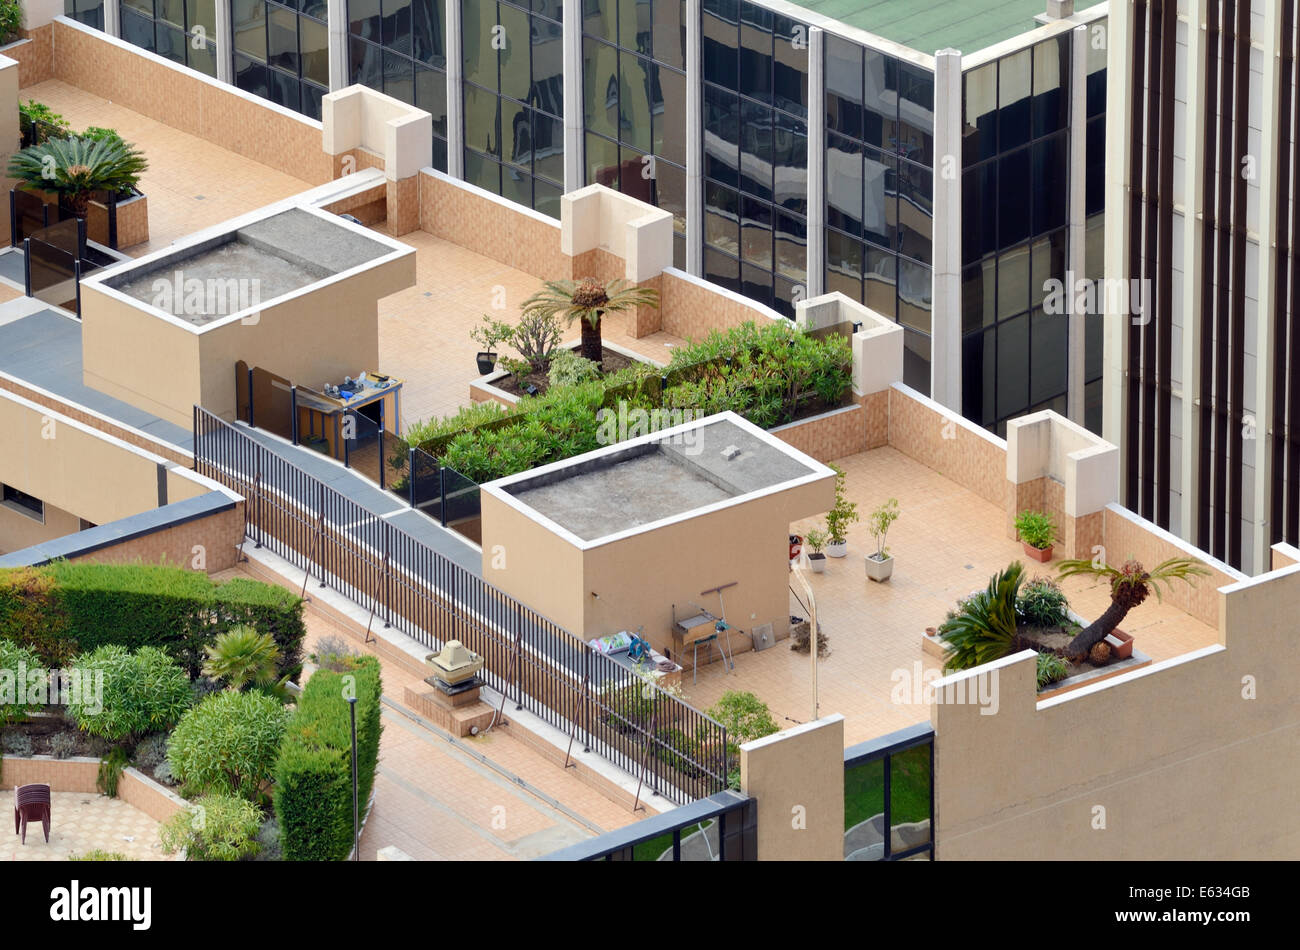 Roof Terraces Or Roof Top Gardens Of Luxury Apartments Or Up Market Flats  Monaco